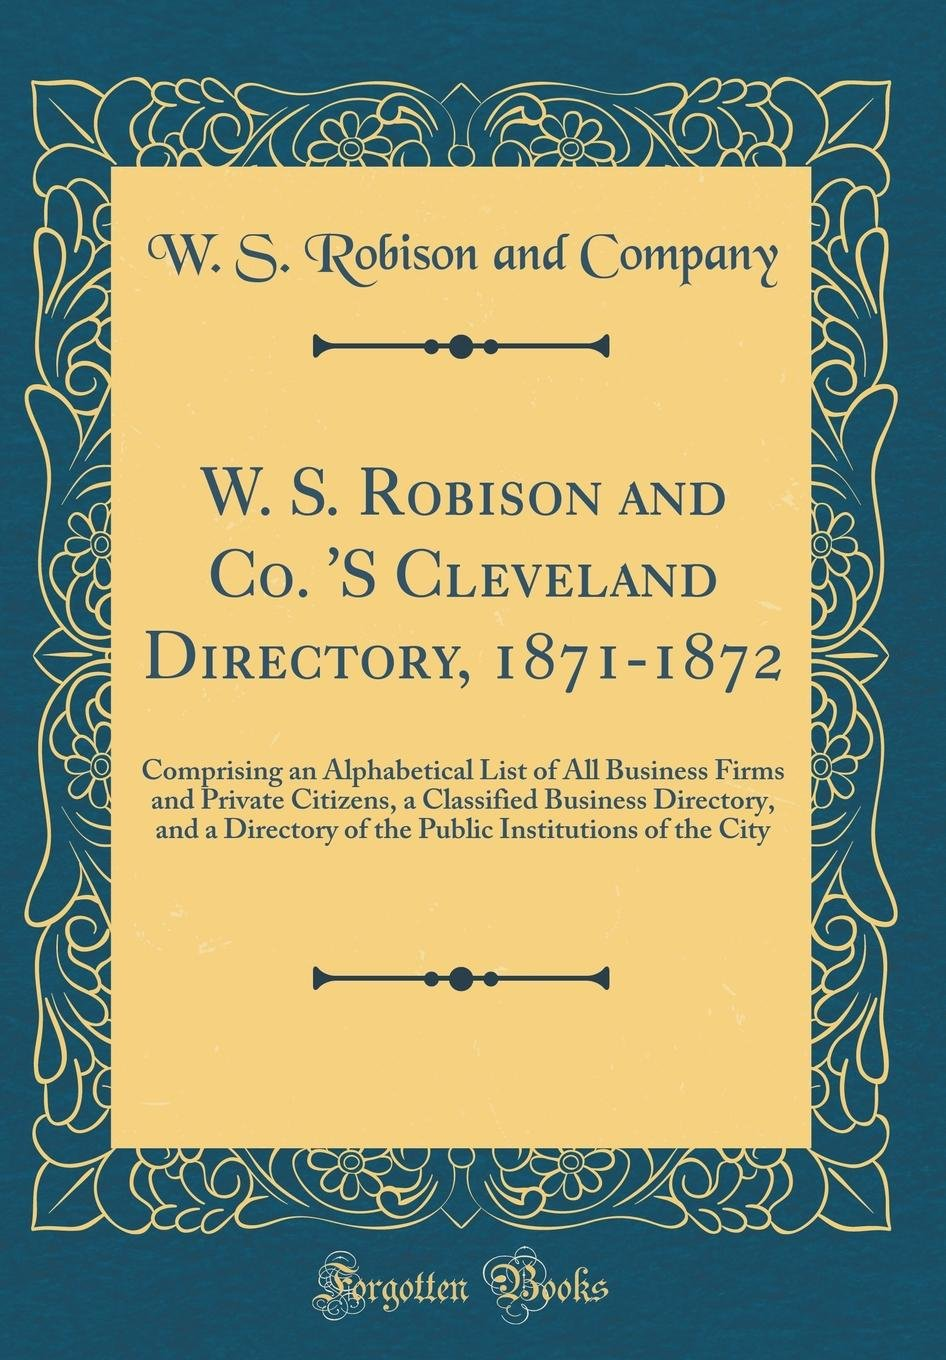 Read Online W. S. Robison and Co. 'S Cleveland Directory, 1871-1872: Comprising an Alphabetical List of All Business Firms and Private Citizens, a Classified ... Institutions of the City (Classic Reprint) ebook